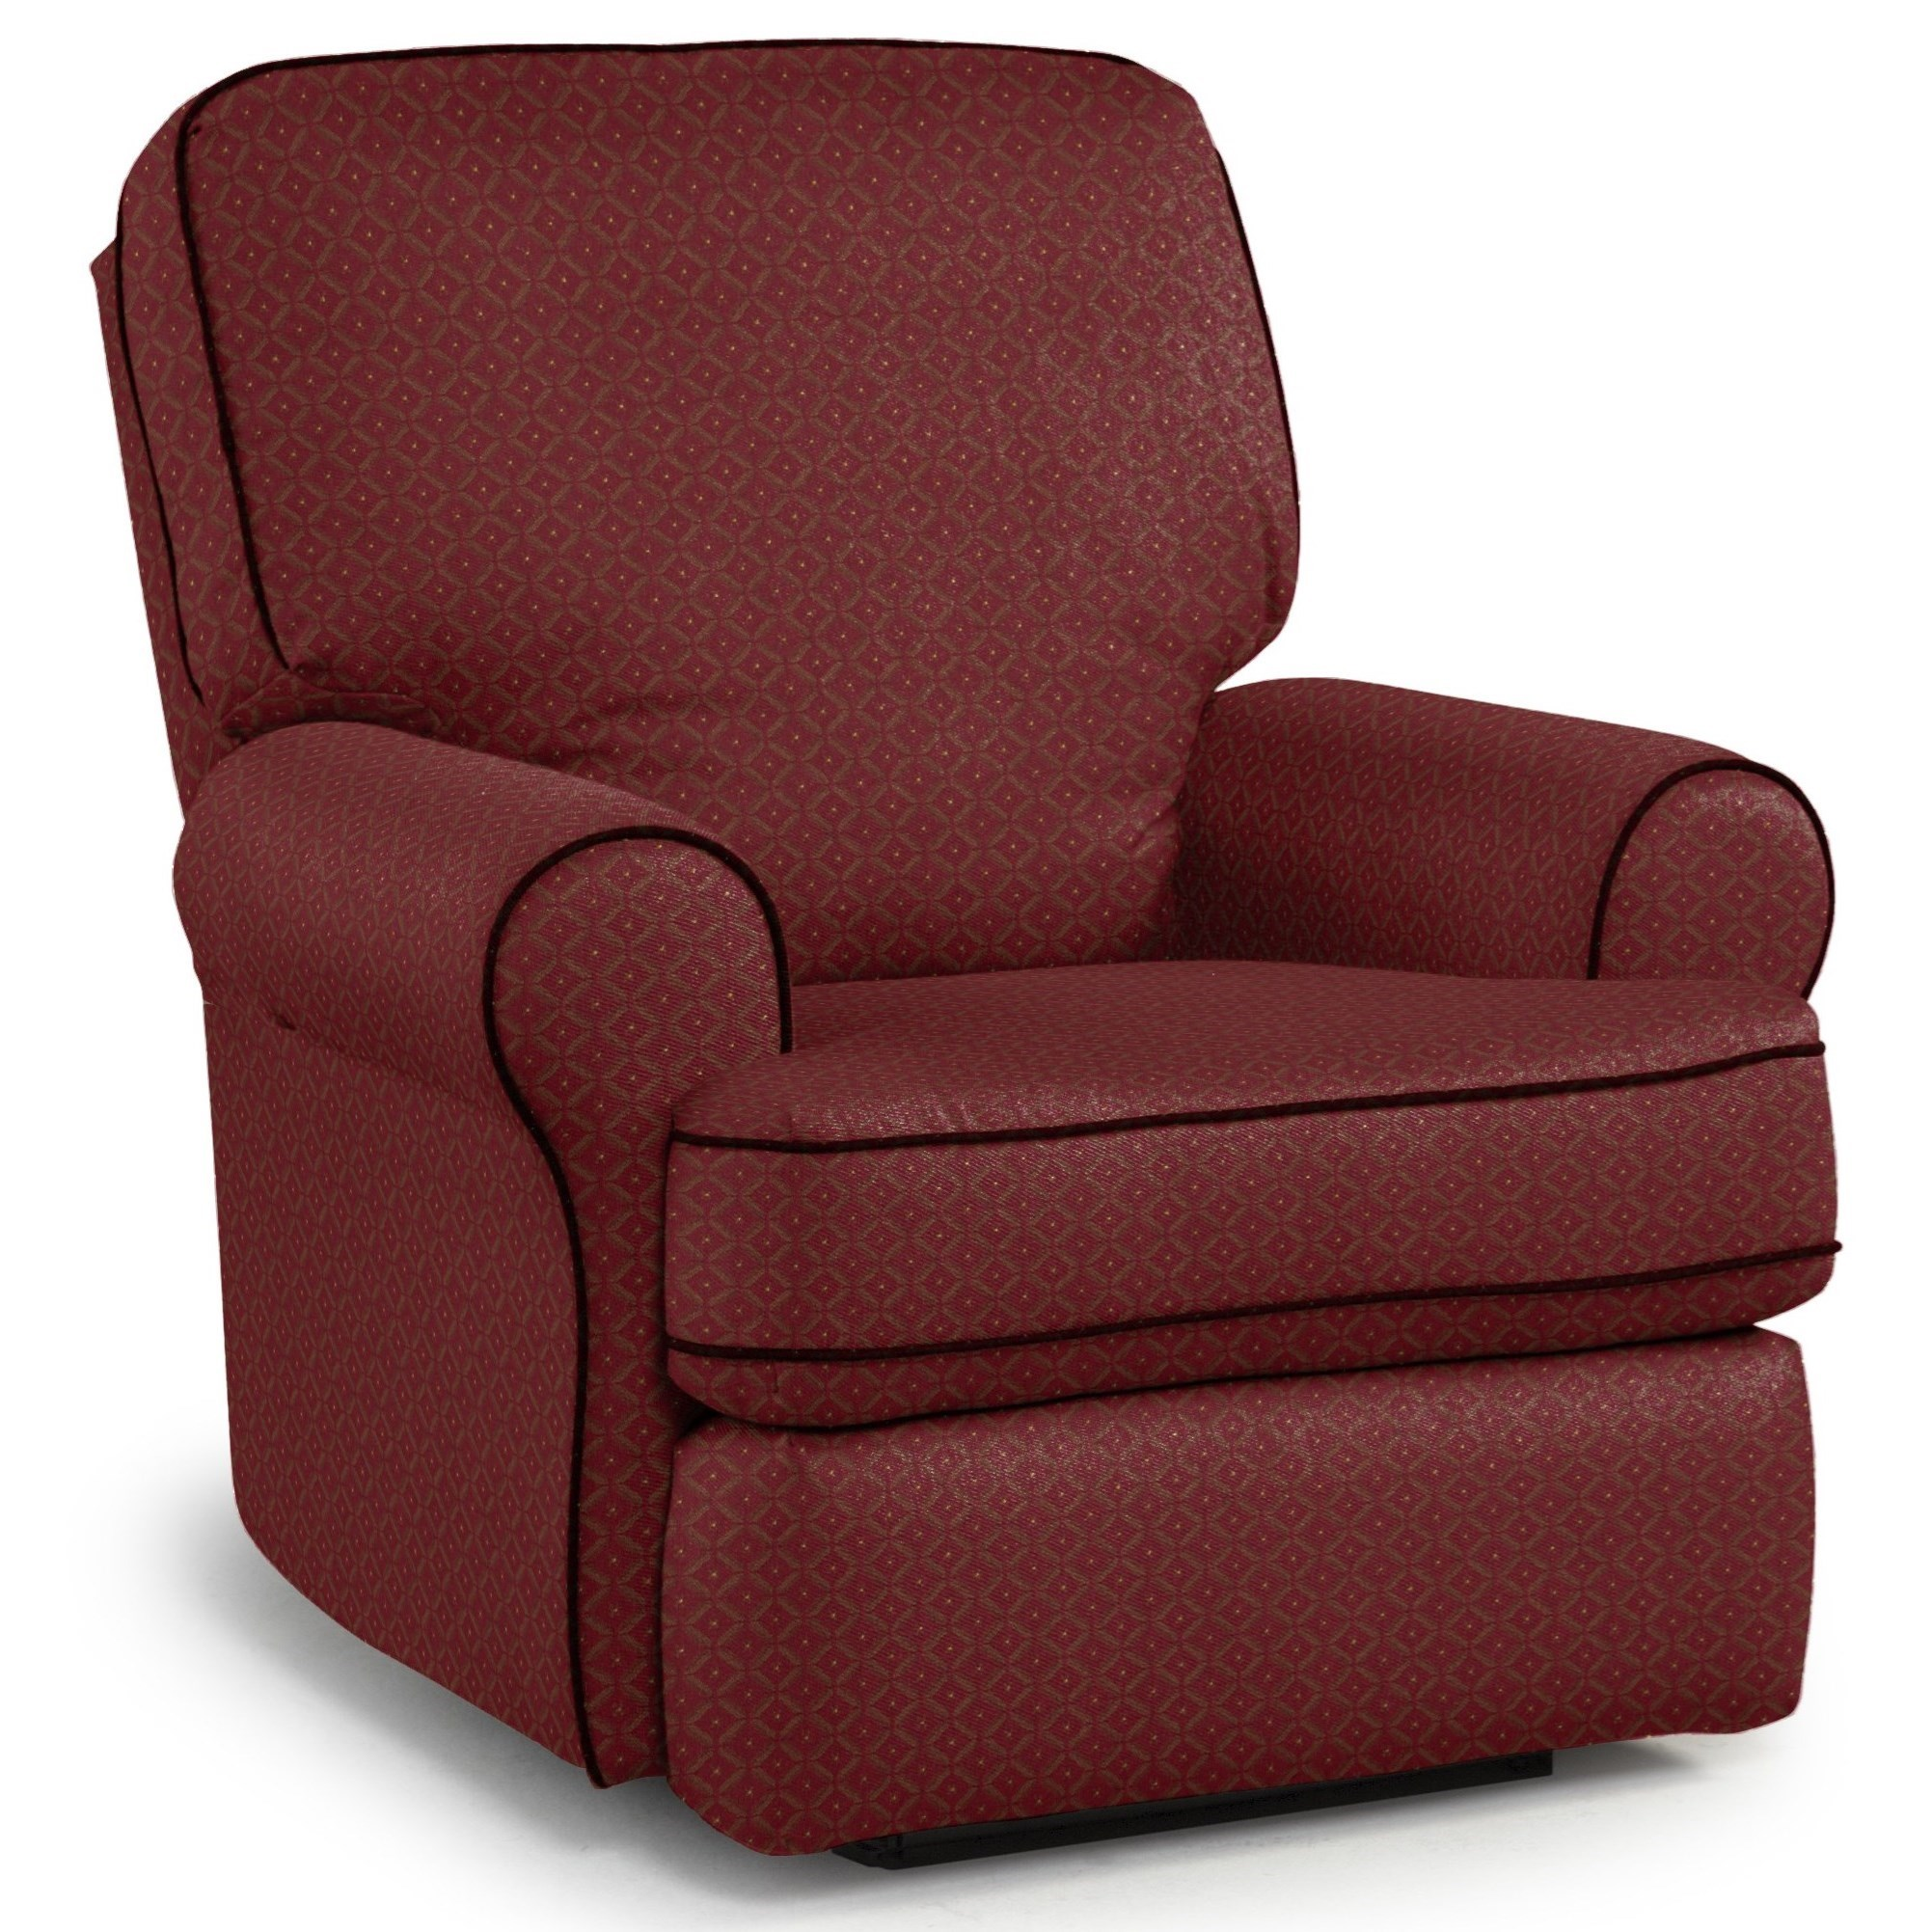 Best Home Furnishings Tryp Wallhugger Recliner - Item Number: -1743602149-18028